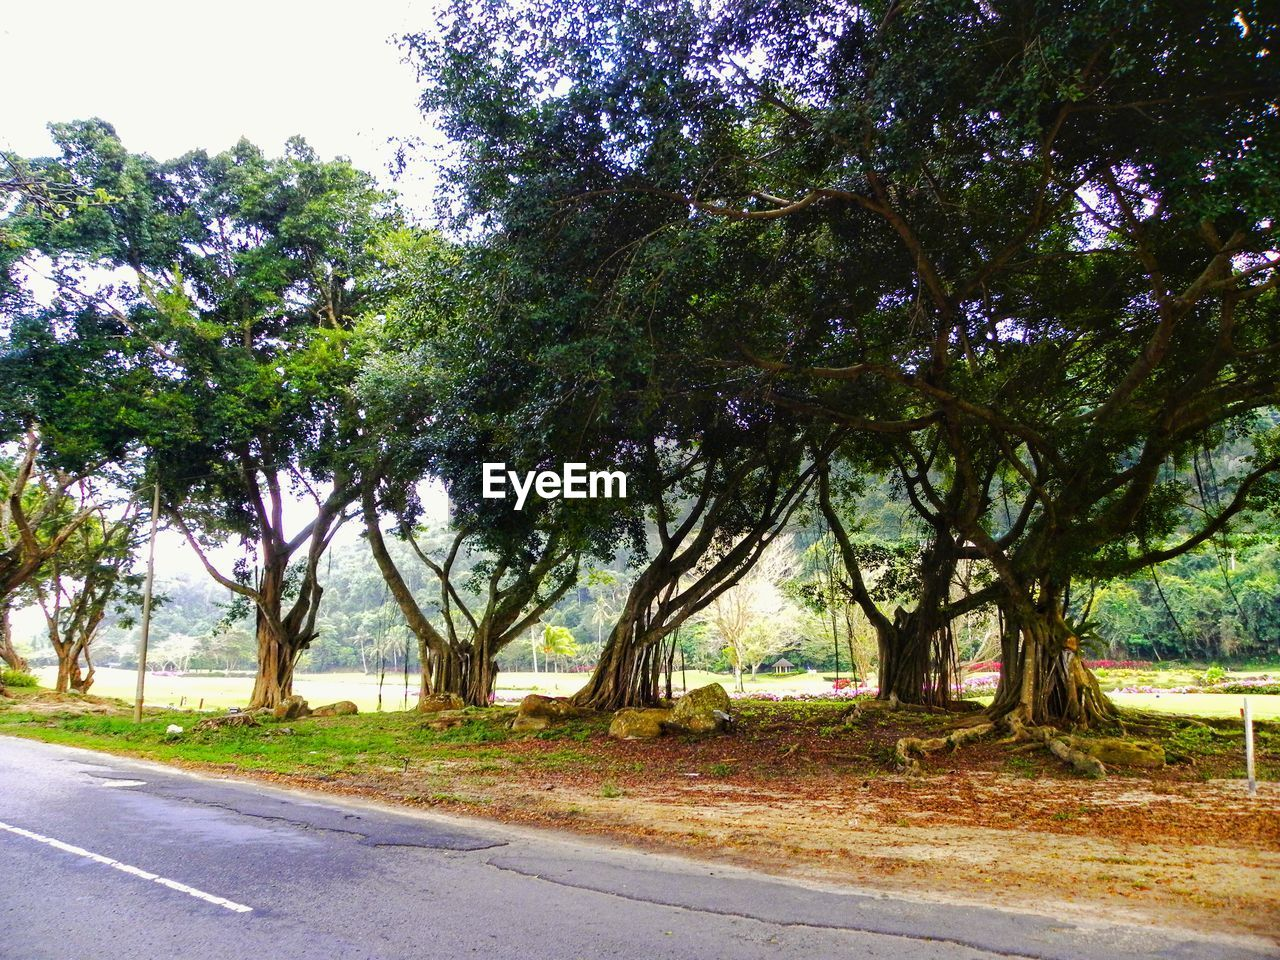 tree, road, growth, nature, outdoors, no people, day